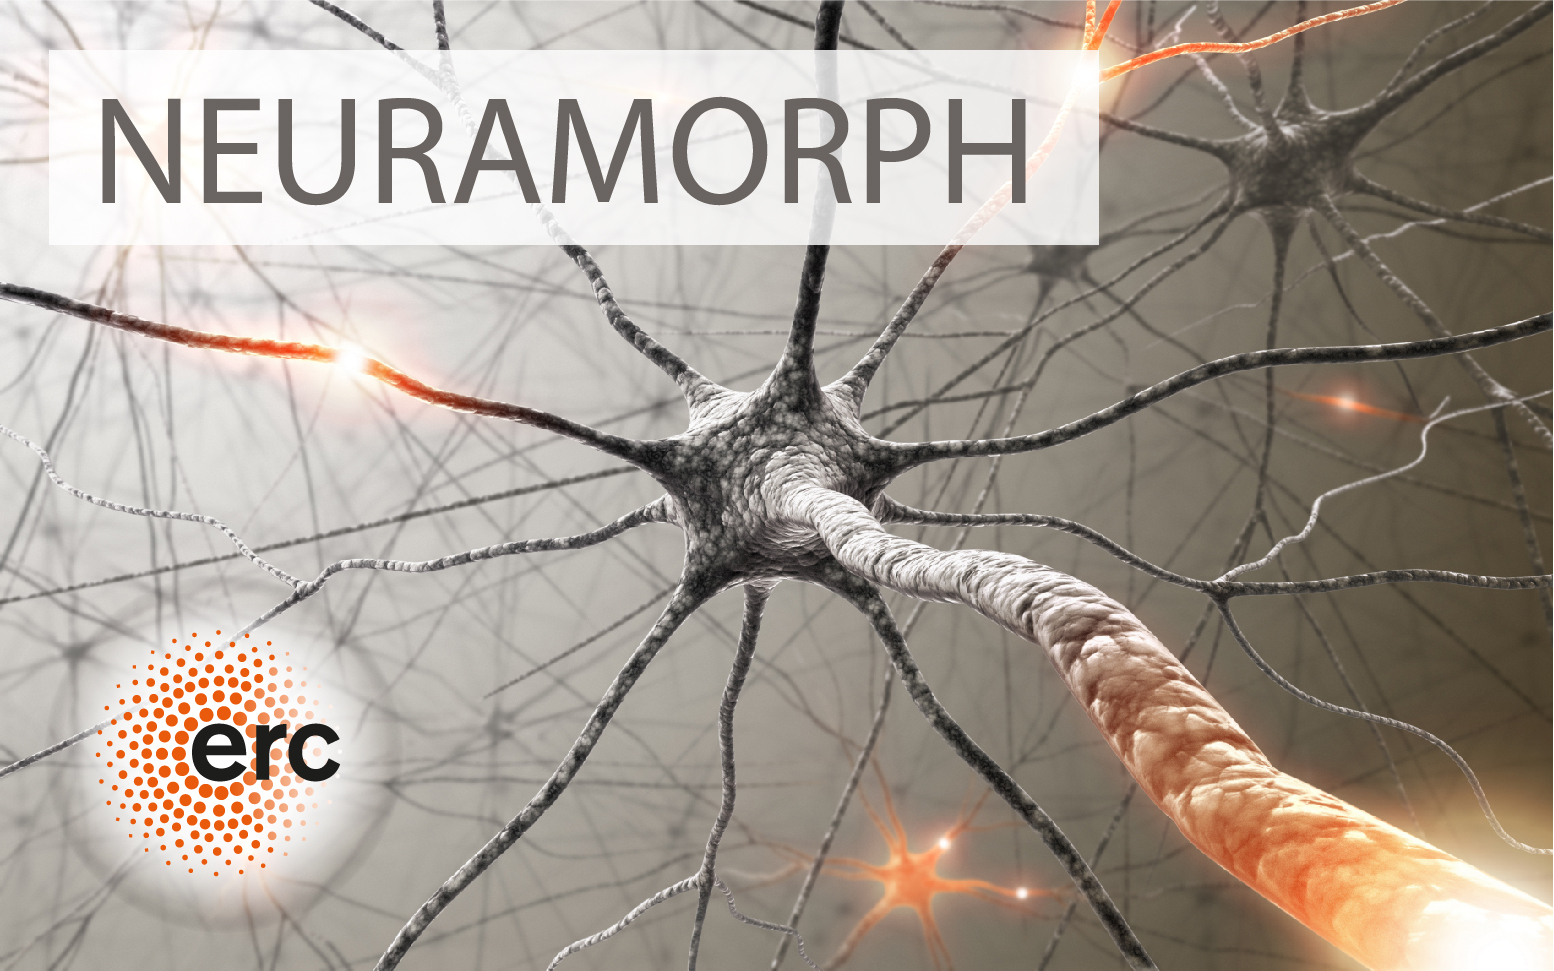 The NEURAMORPH project